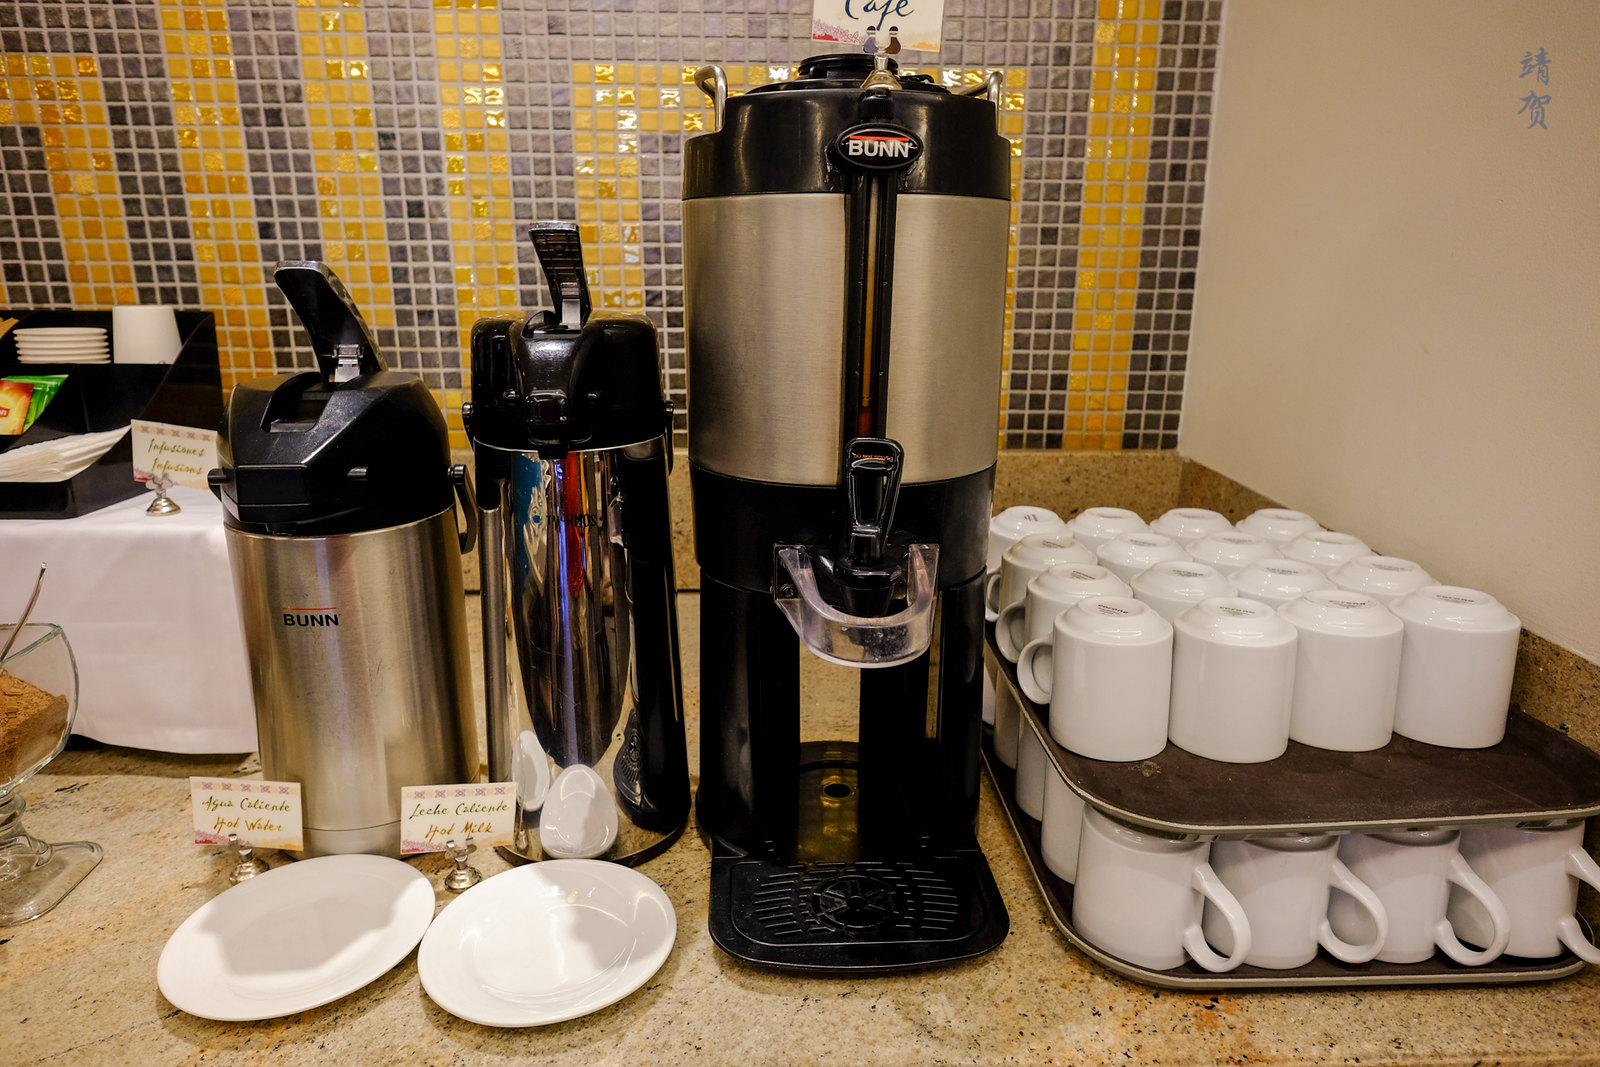 Coffee and hot water dispenser